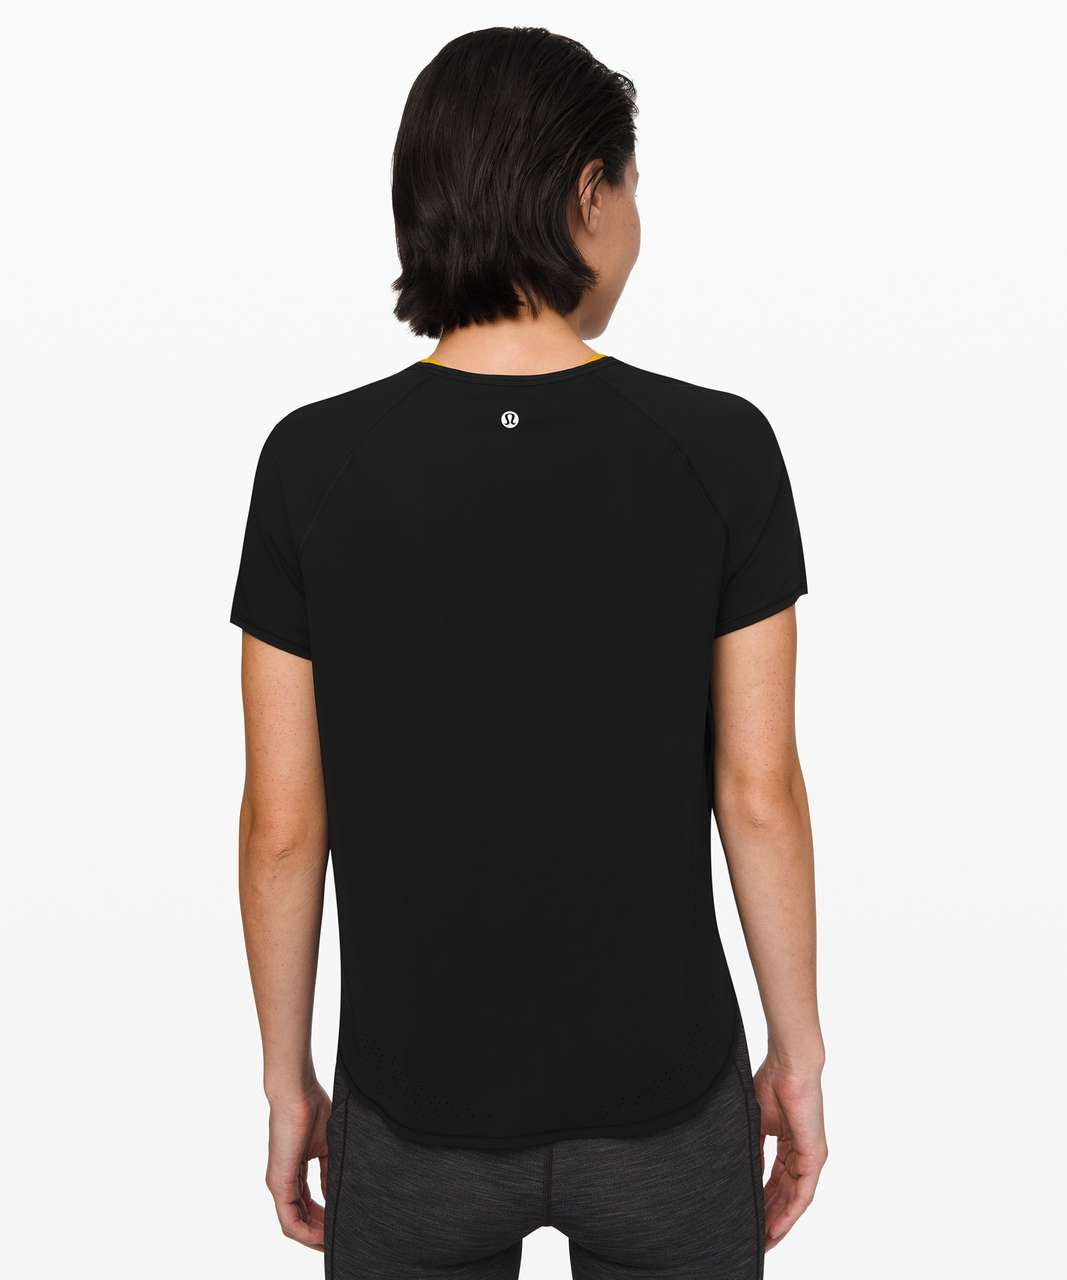 Lululemon Strong Rays Short Sleeve - Black